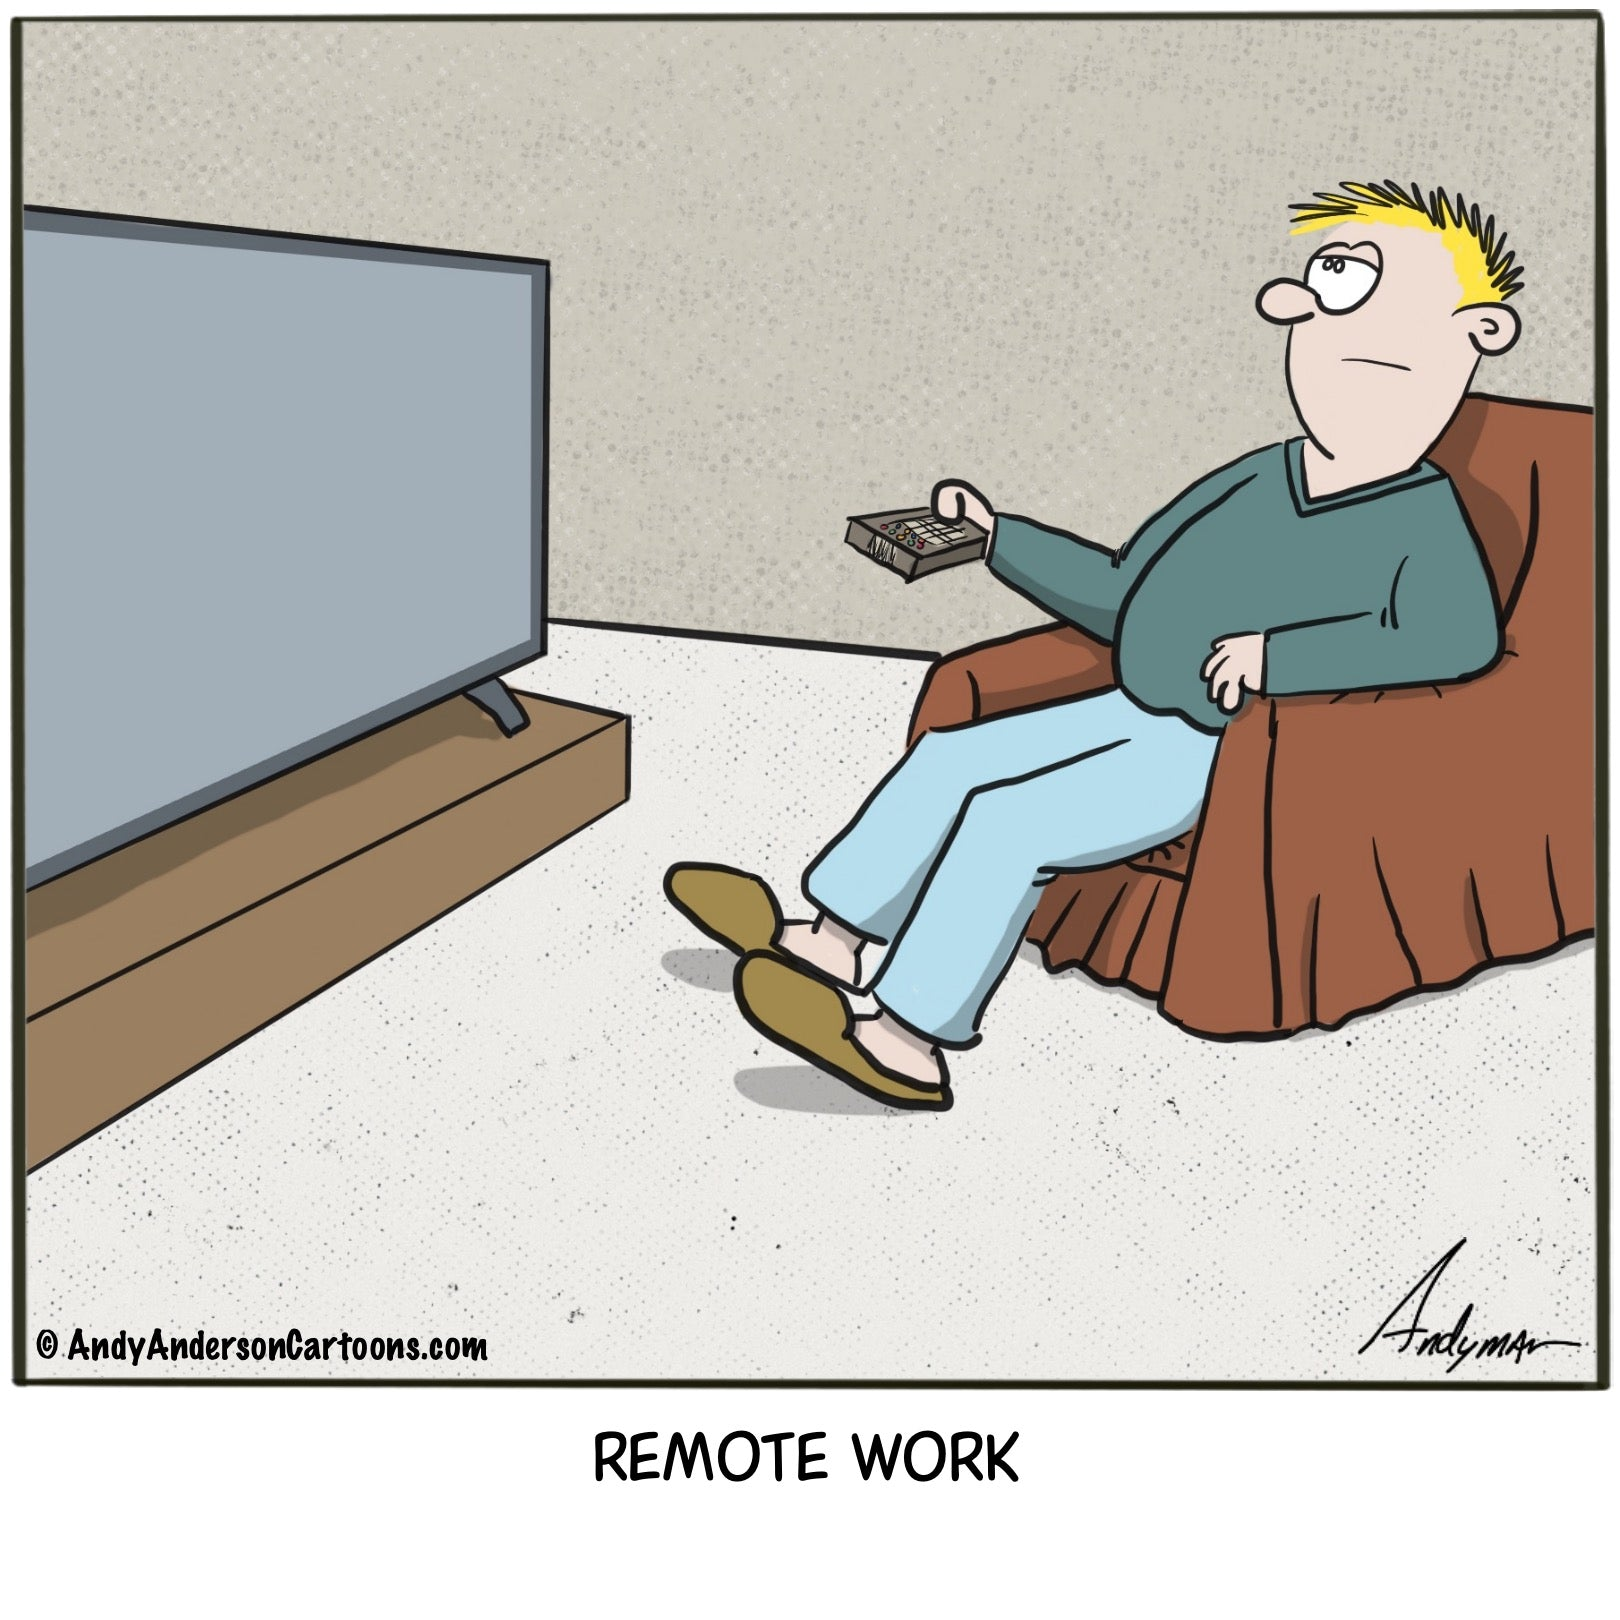 Cartoon about the misconception of remote work